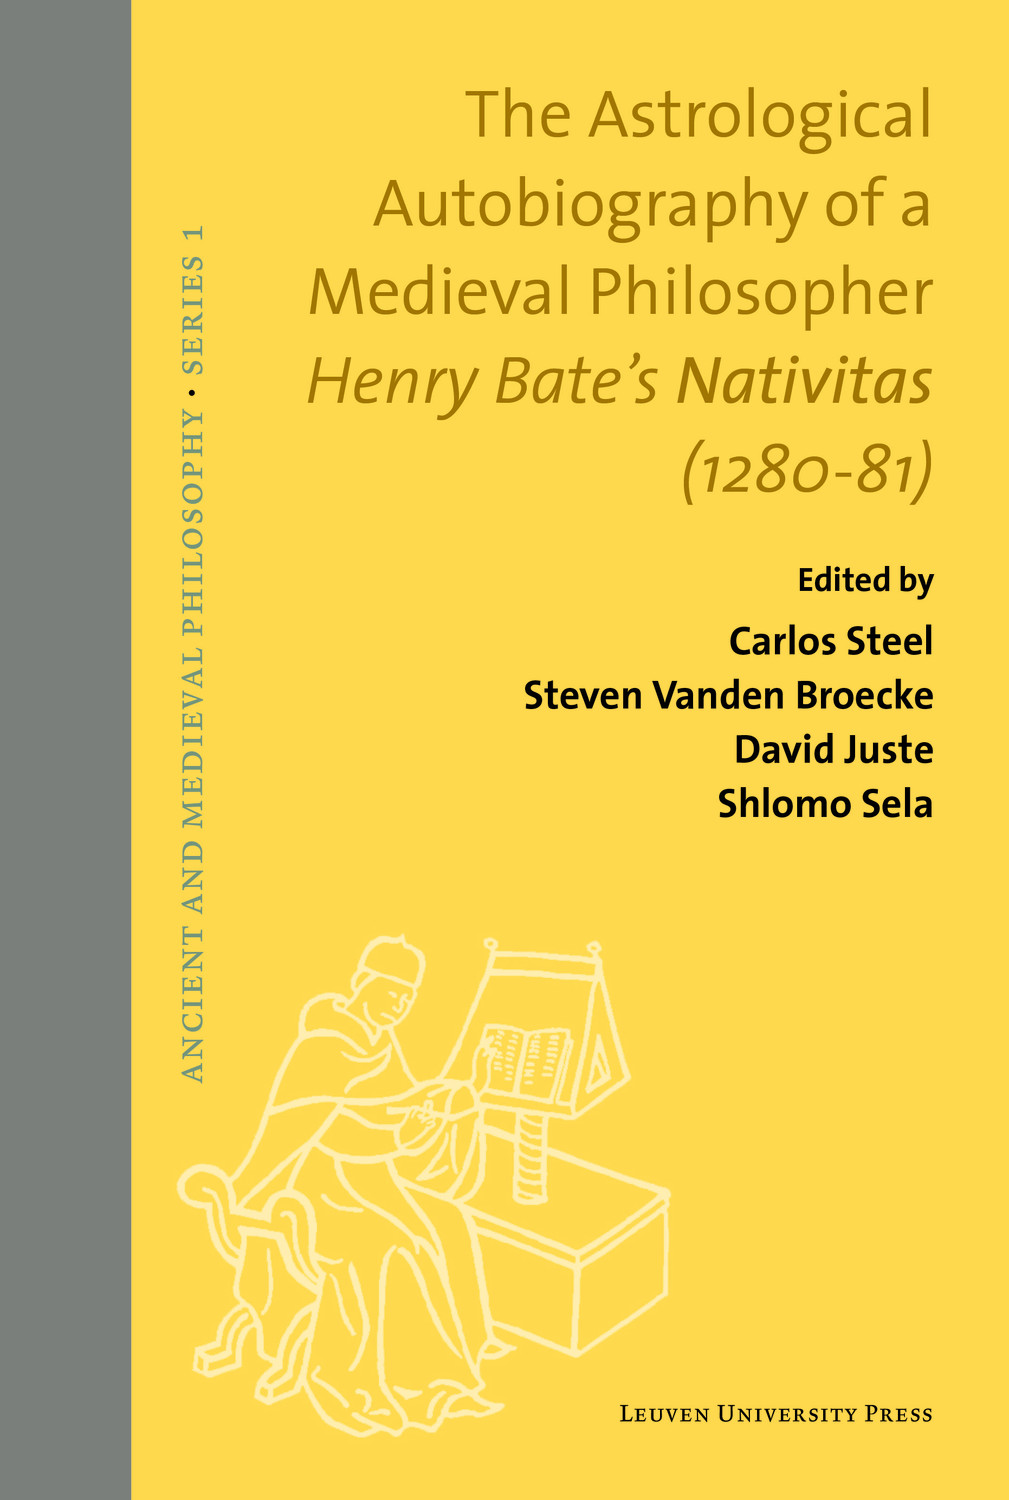 The Astrological Autobiography of a Medieval Philosopher